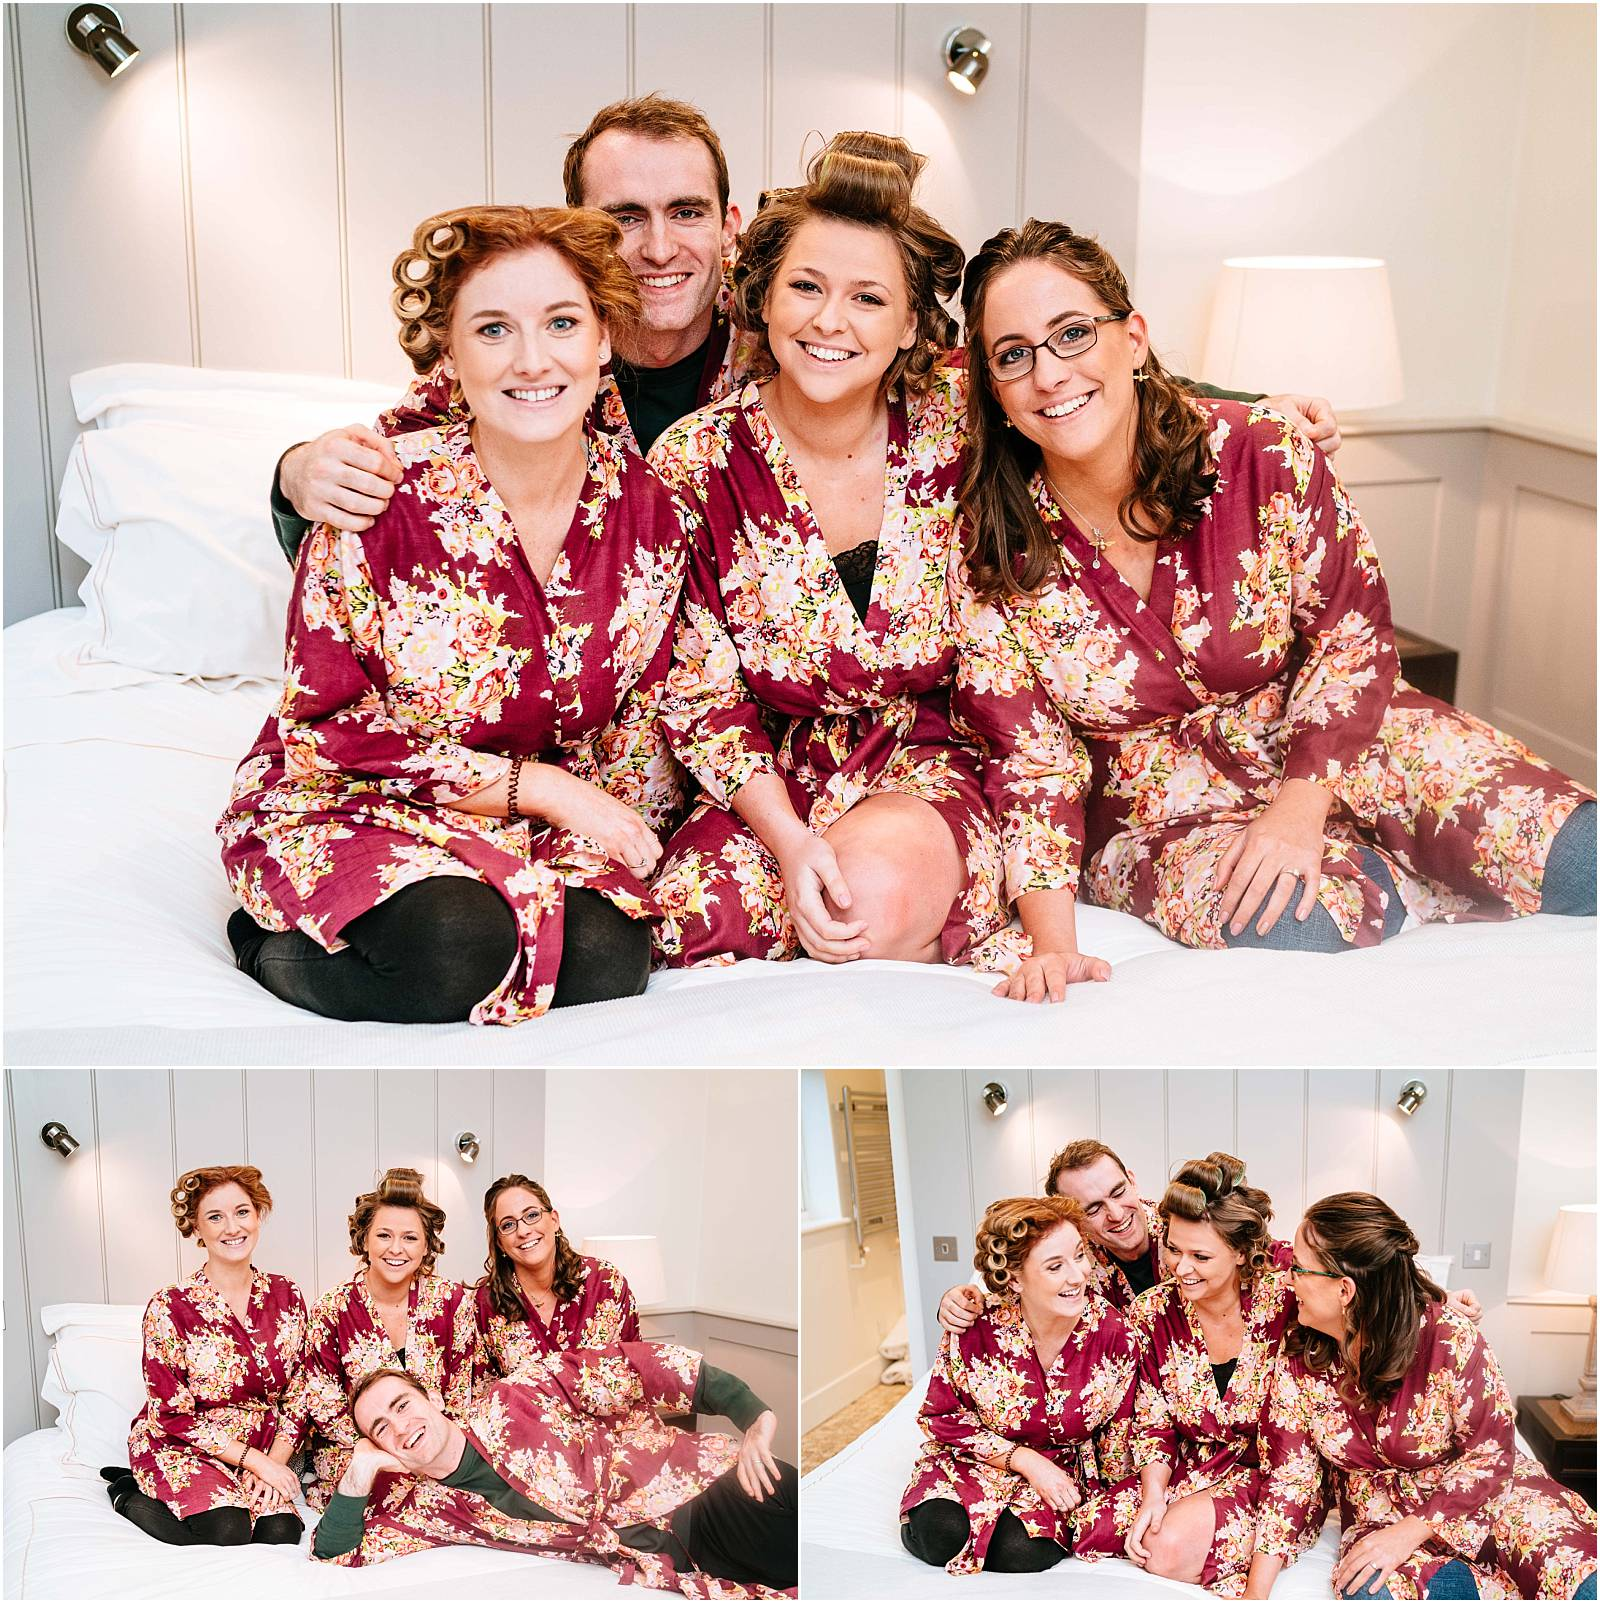 bridesmaids and bride man in matching robes